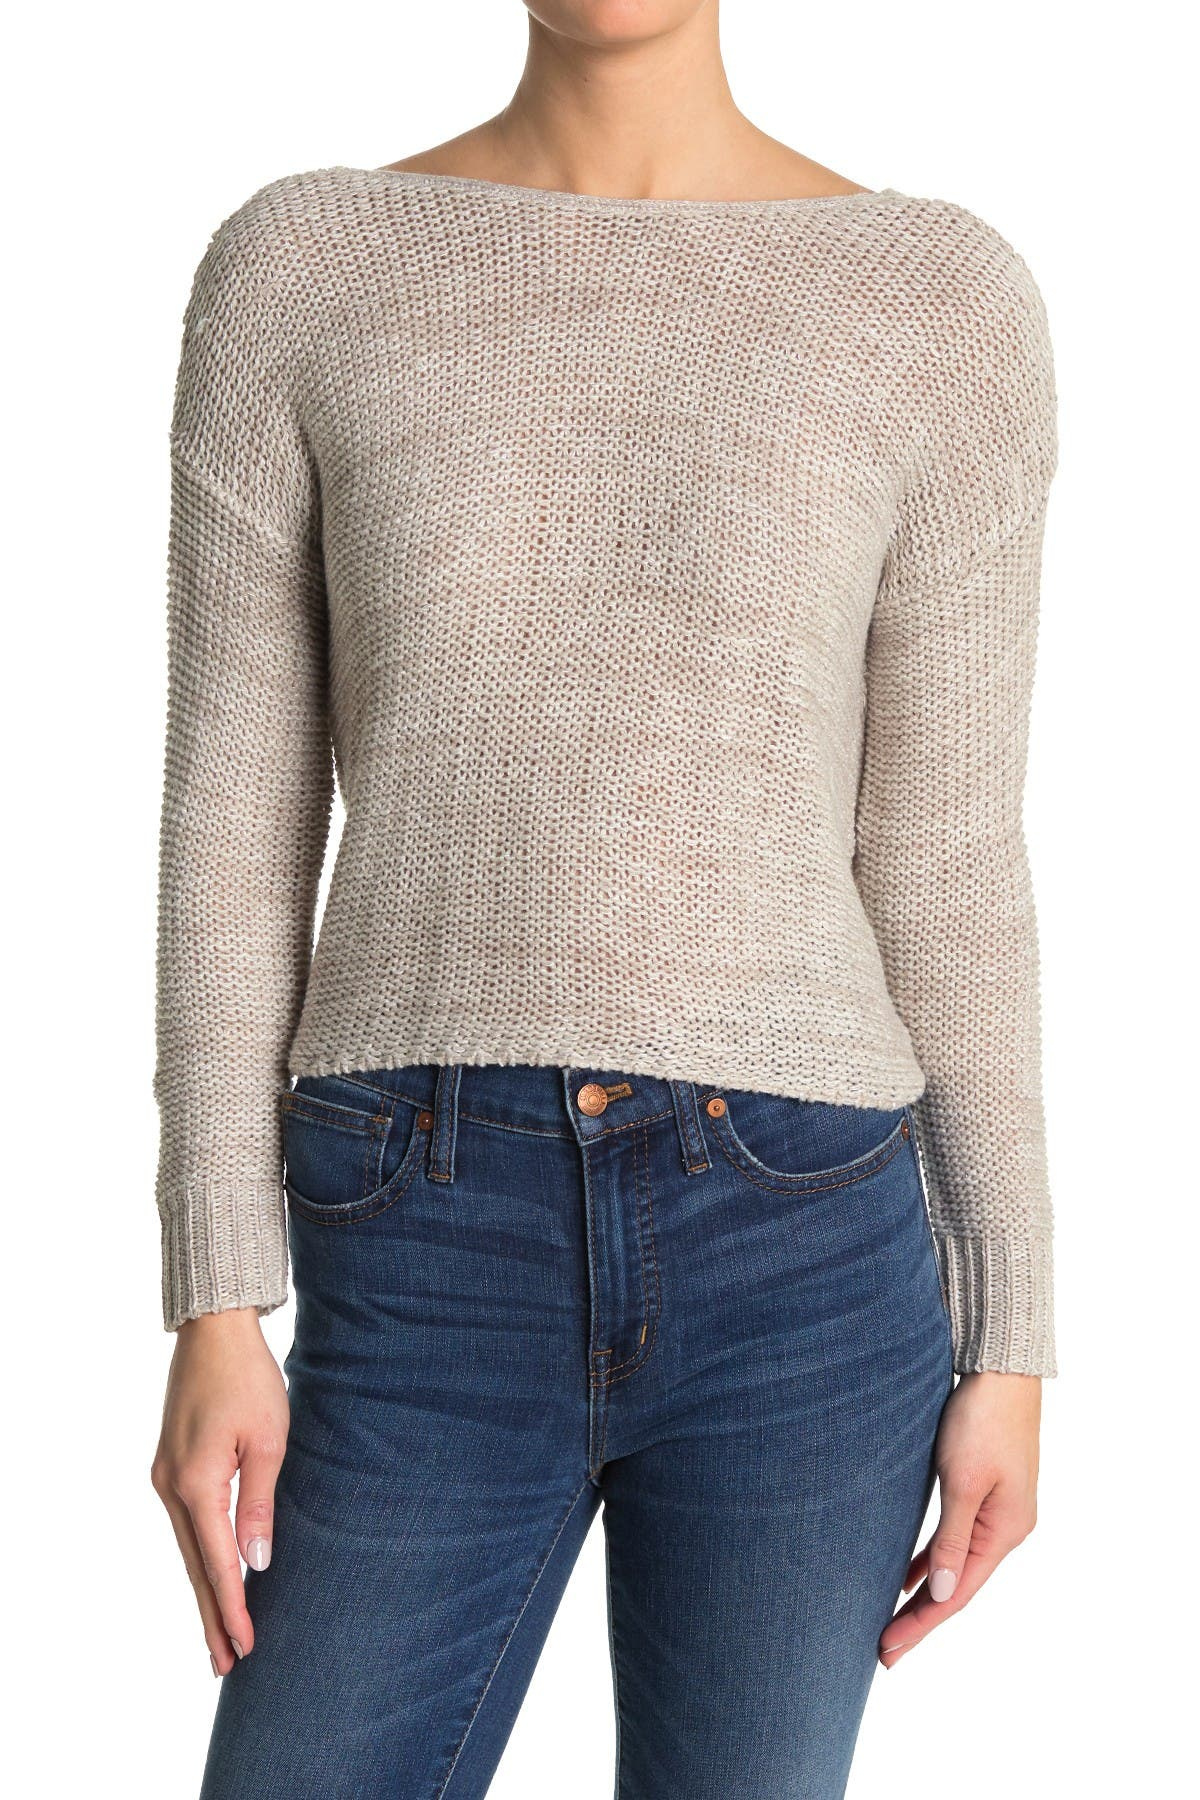 Image of Abound Twist Back Knit Sweater